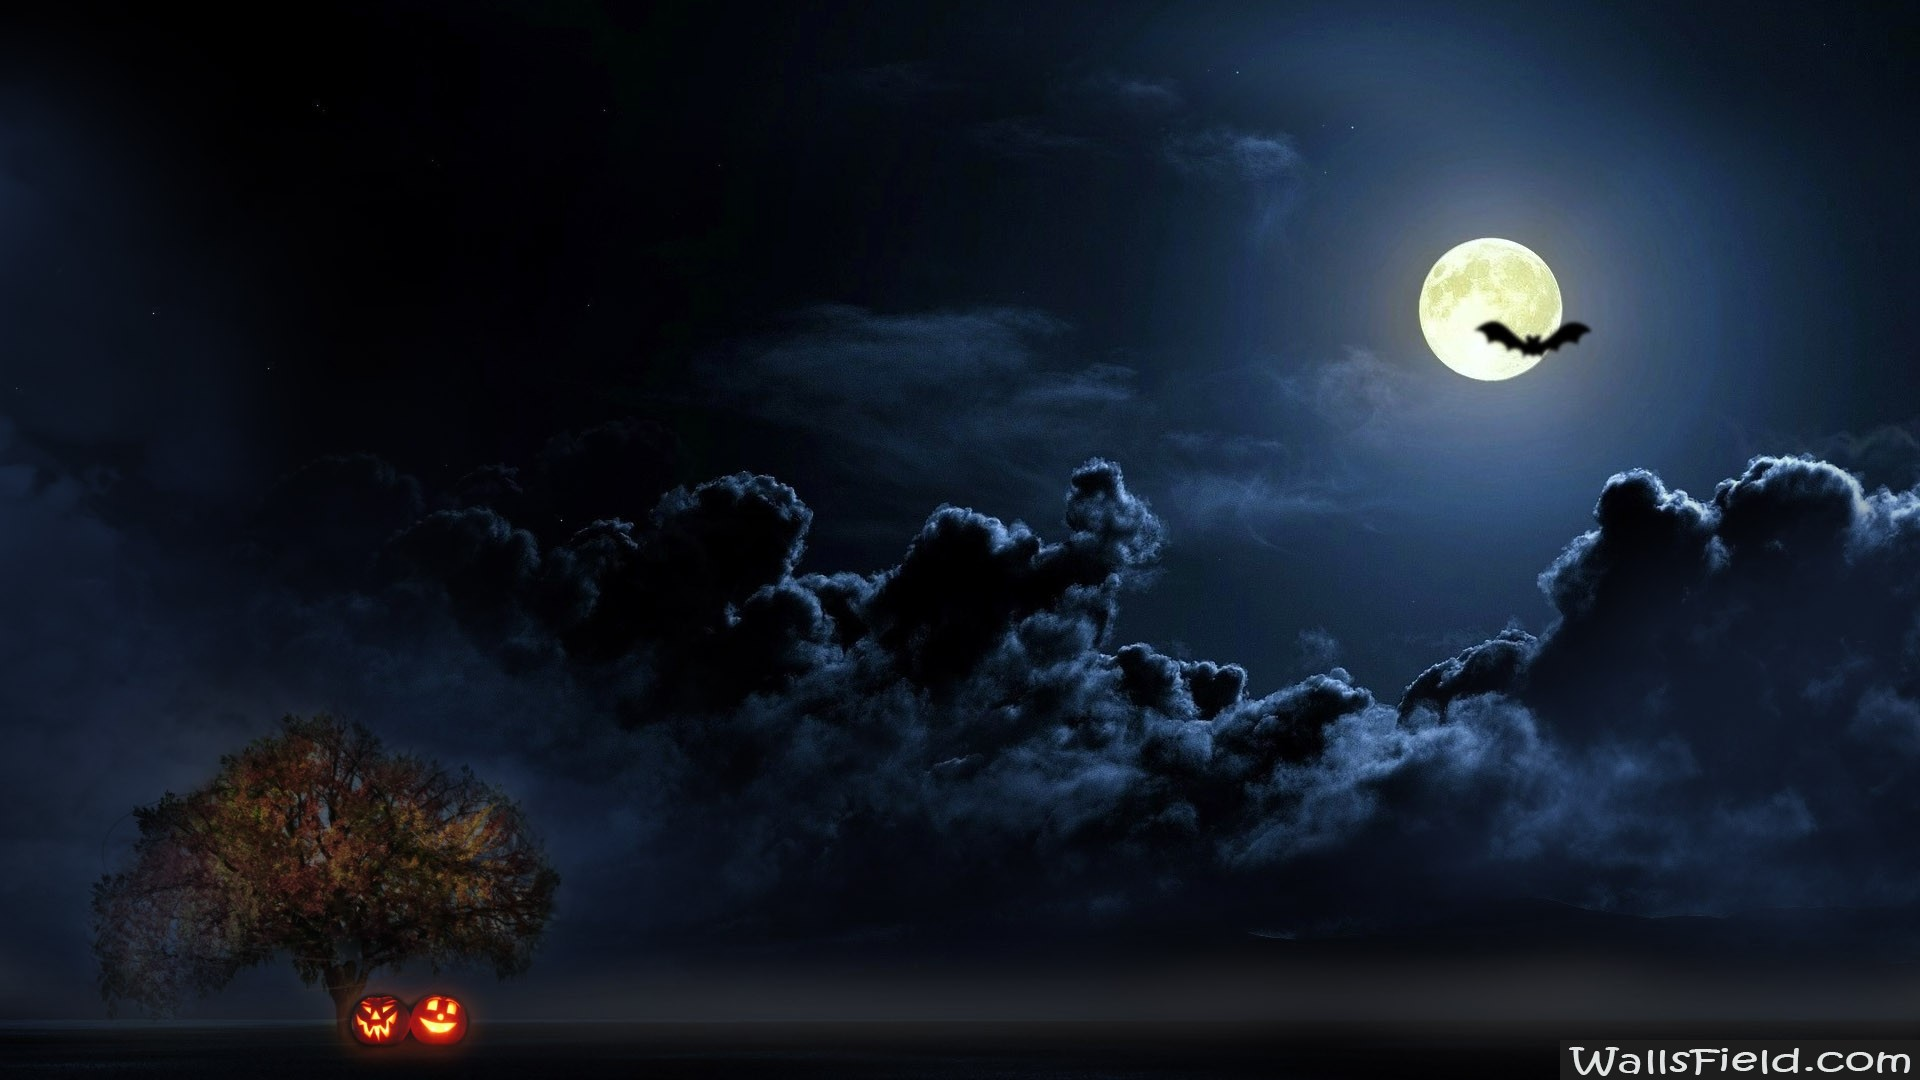 You can view, download and comment on Romantic Halloween free hd wallpapers  for your desktop